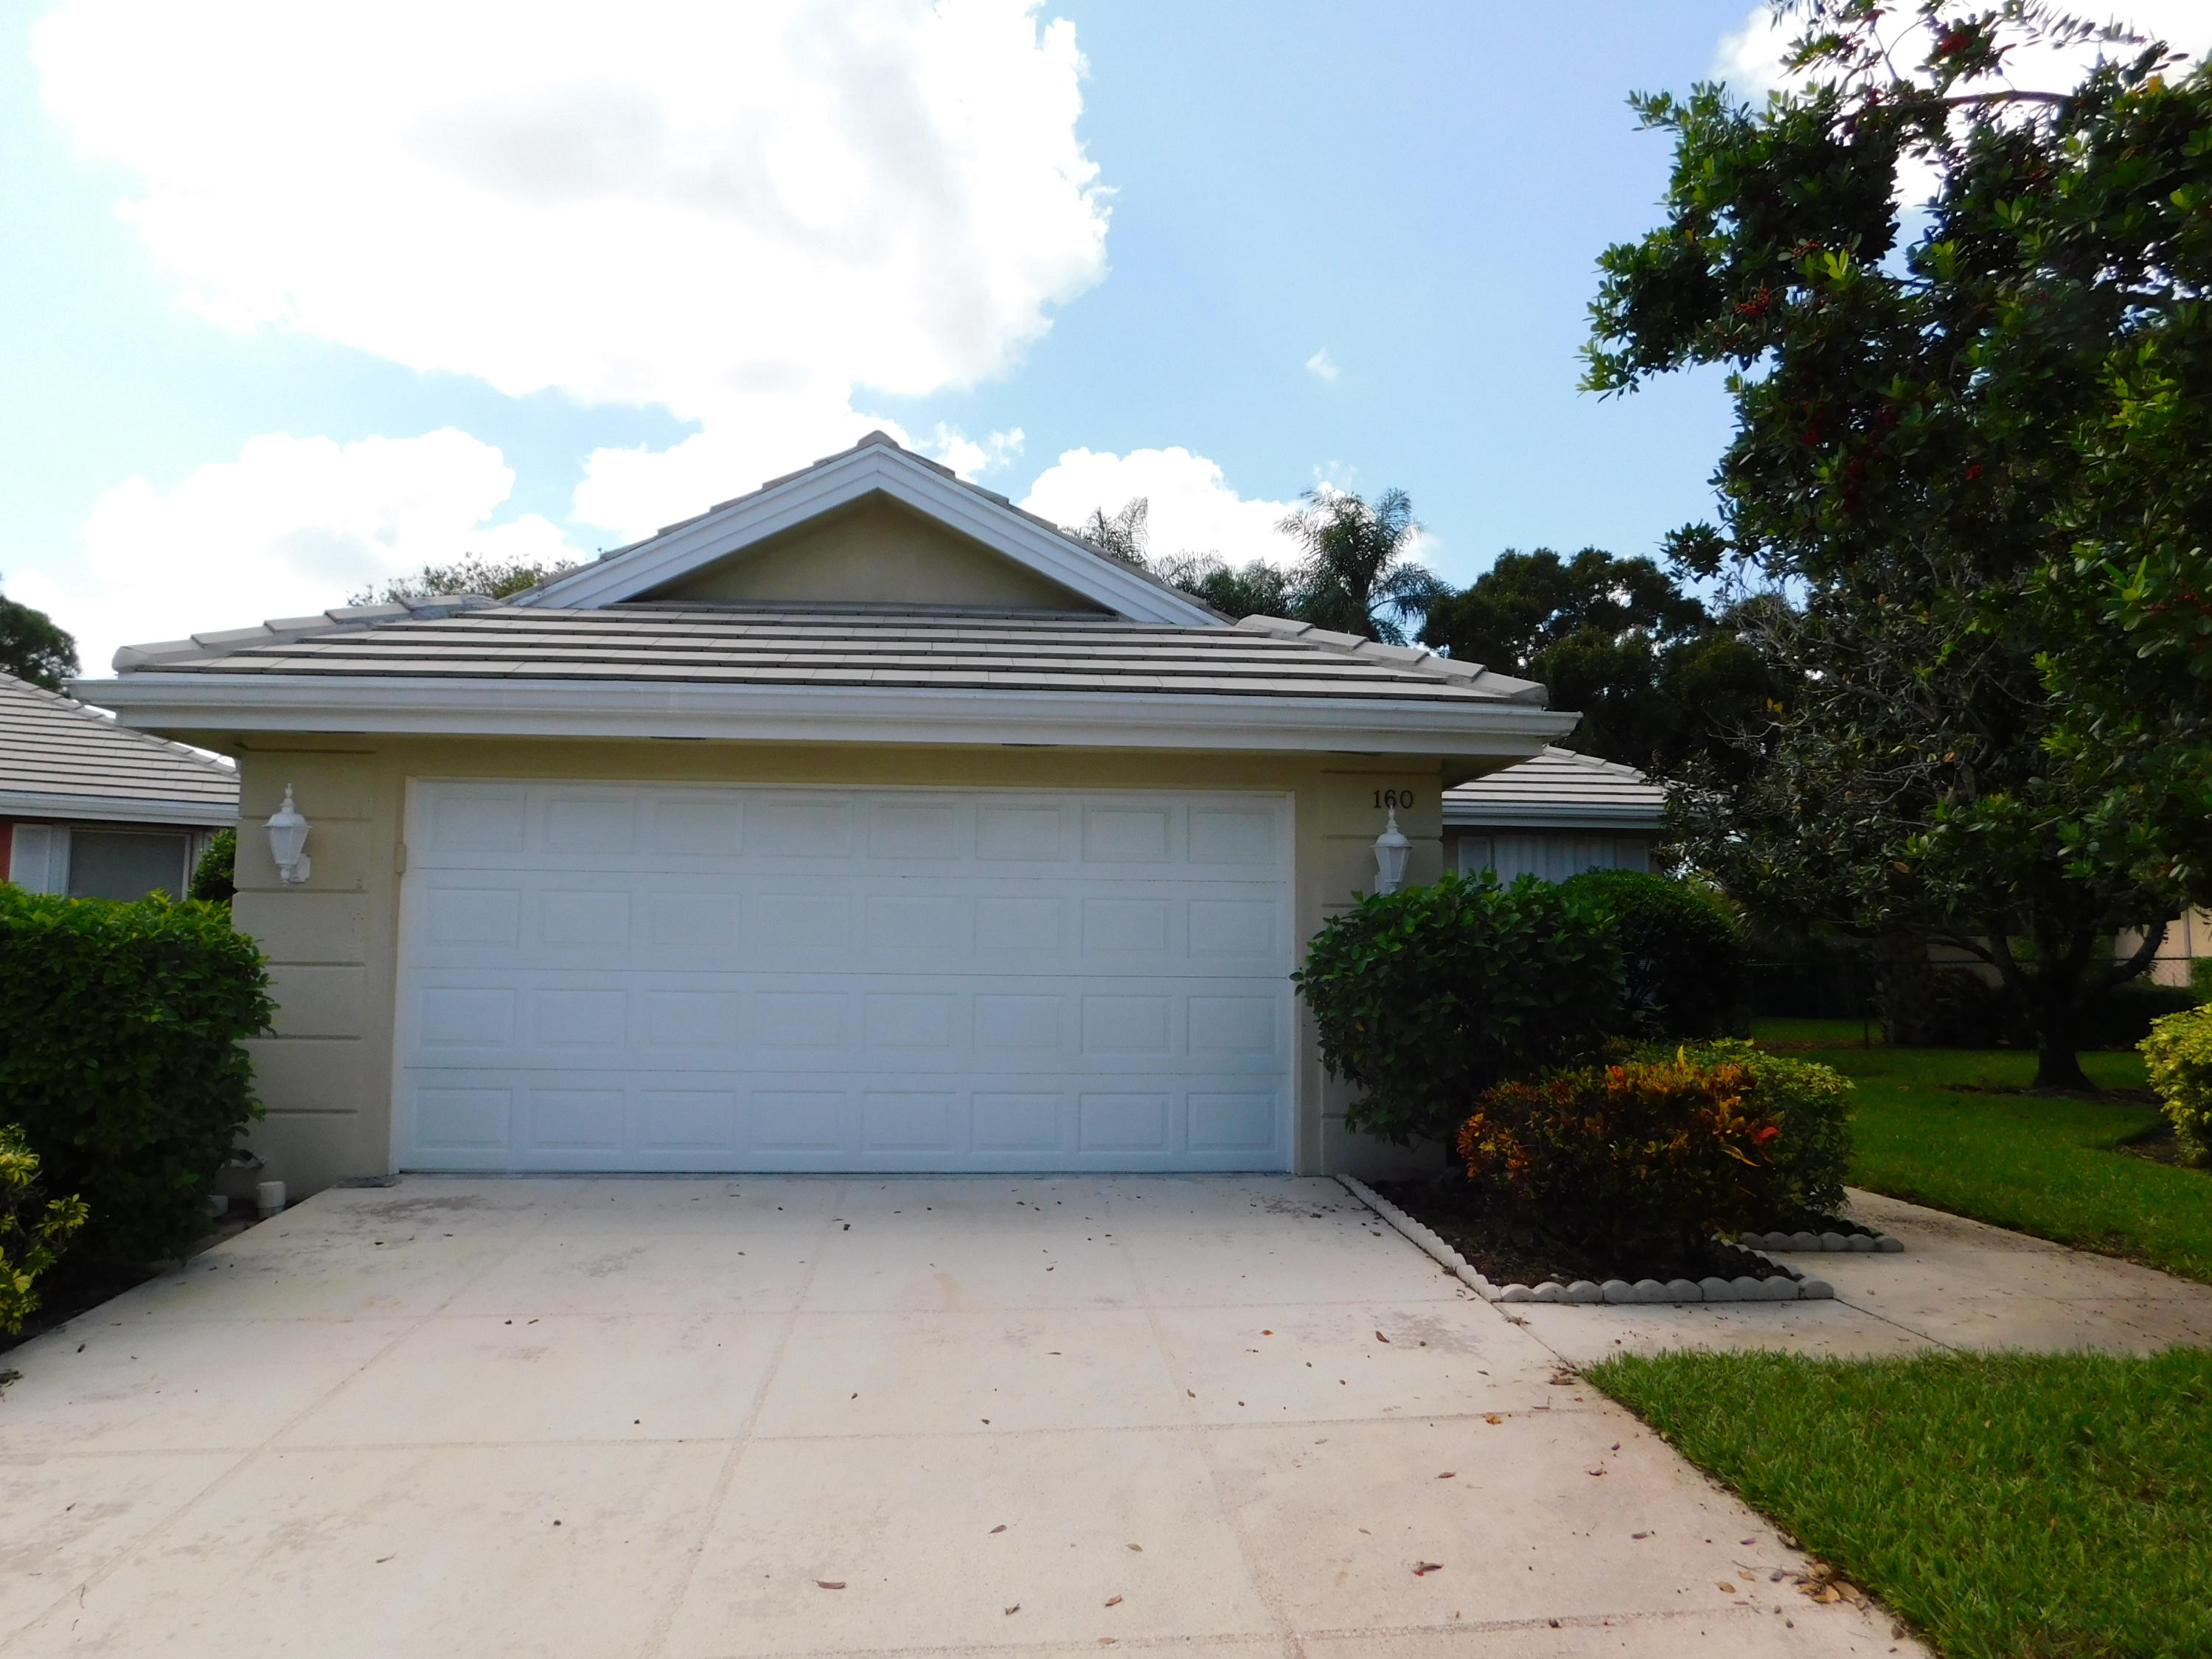 160 Nw Bentley Circle, Port Saint Lucie, FL 34986